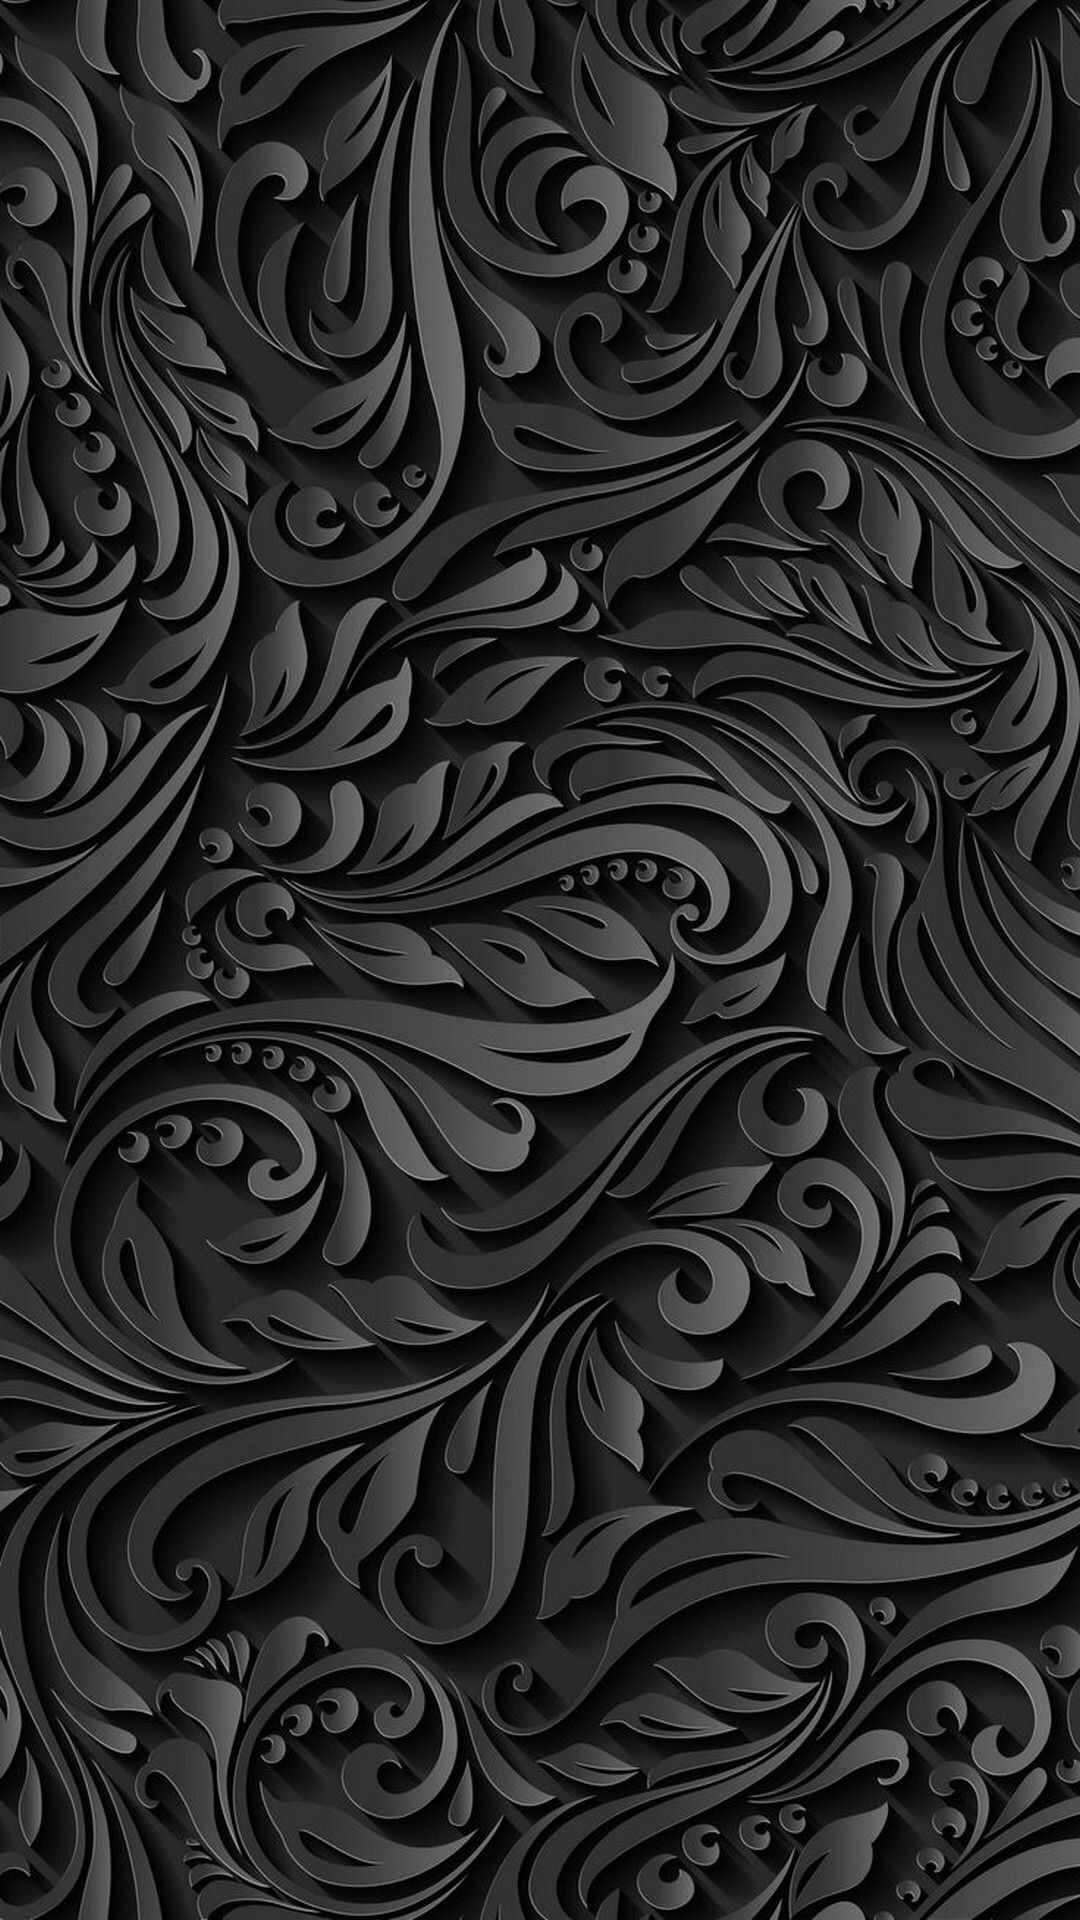 Full Size Black Pattern Iphone Wallpaper Full Size Is High Definition Phone Wallpaper You Can Make T Iphone 6 Plus Wallpaper Pattern Wallpaper Black Wallpaper